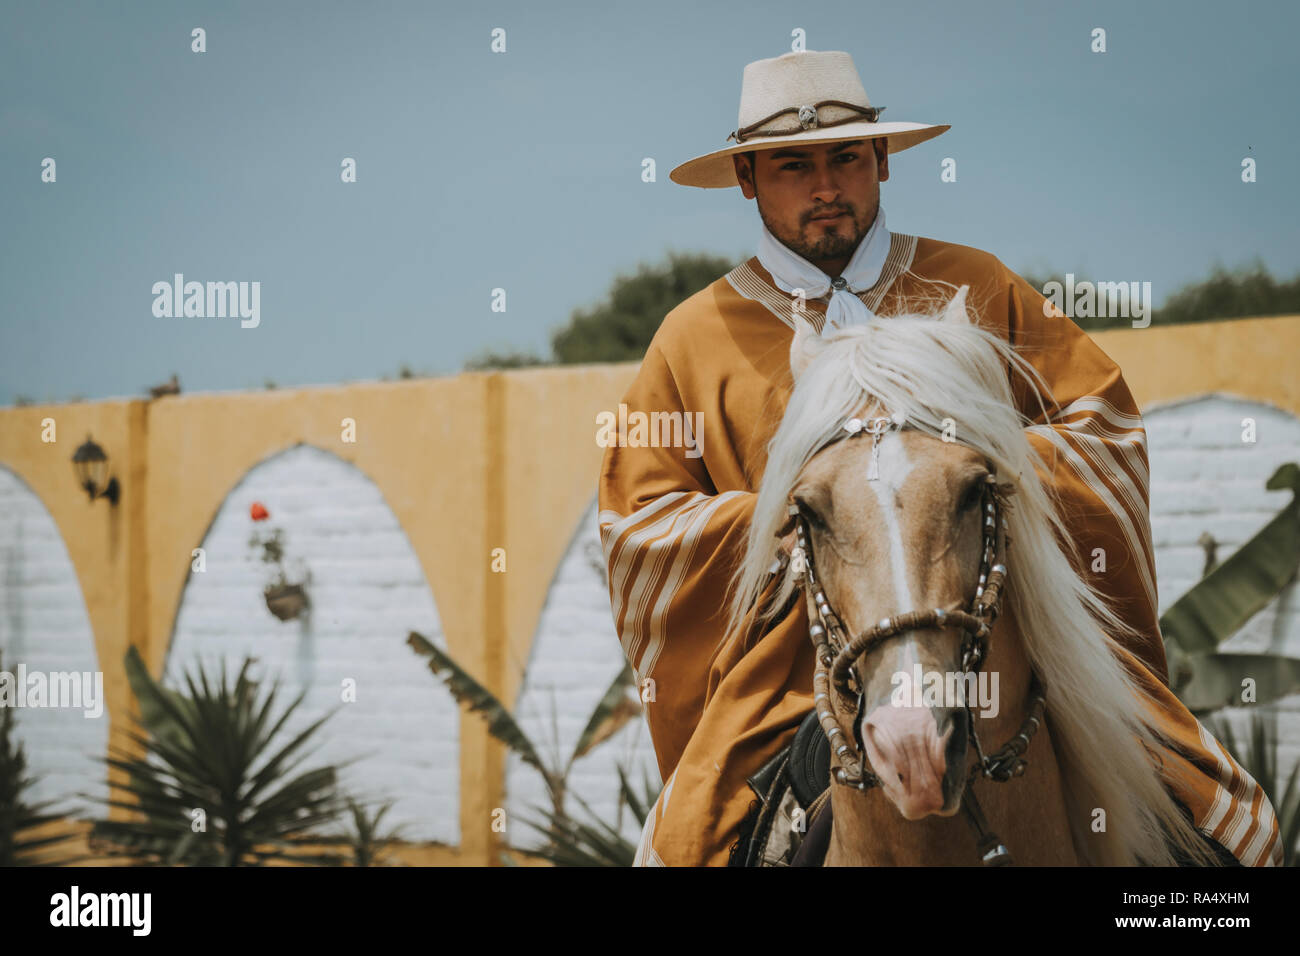 TRUJILLO, PERU - SEPTEMBER 2018 : Cowboy on horse in Peru, riding towards camera, viewed in close-up from the front with copy space Stock Photo